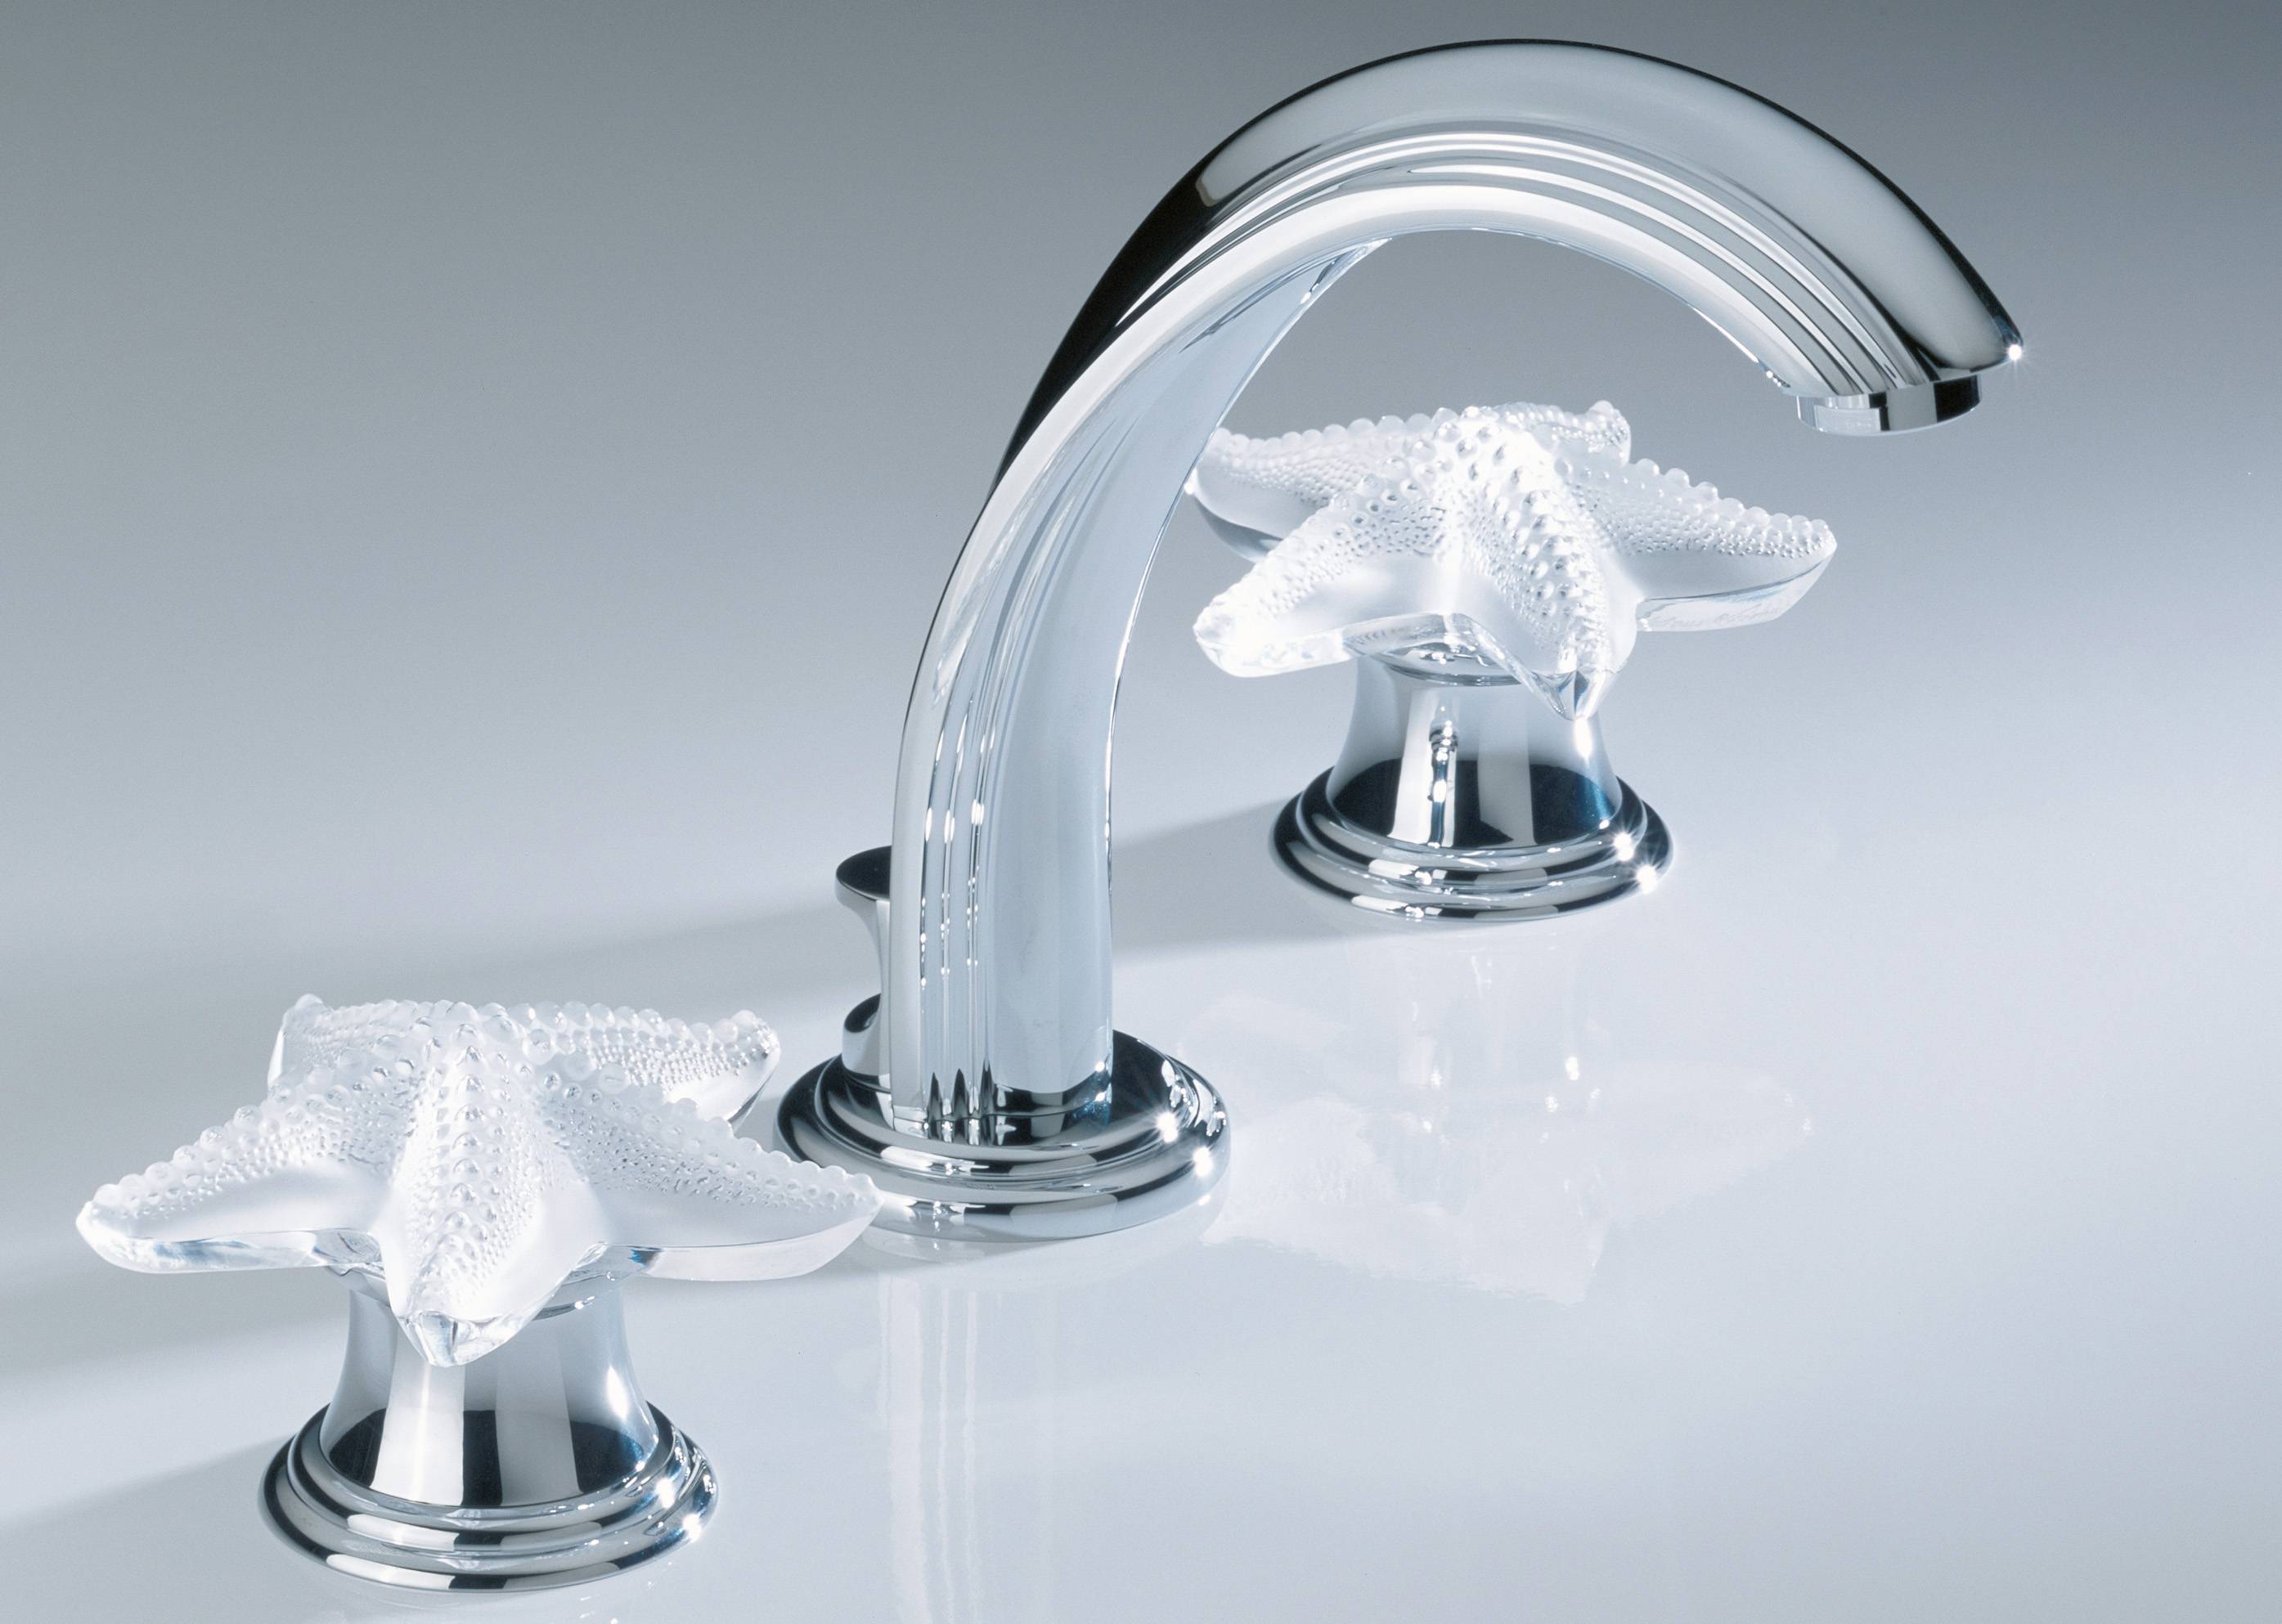 Lalique crystal starfish-shaped handles are part of the Oceania collection at luxury bath manufacturer THG-Paris.